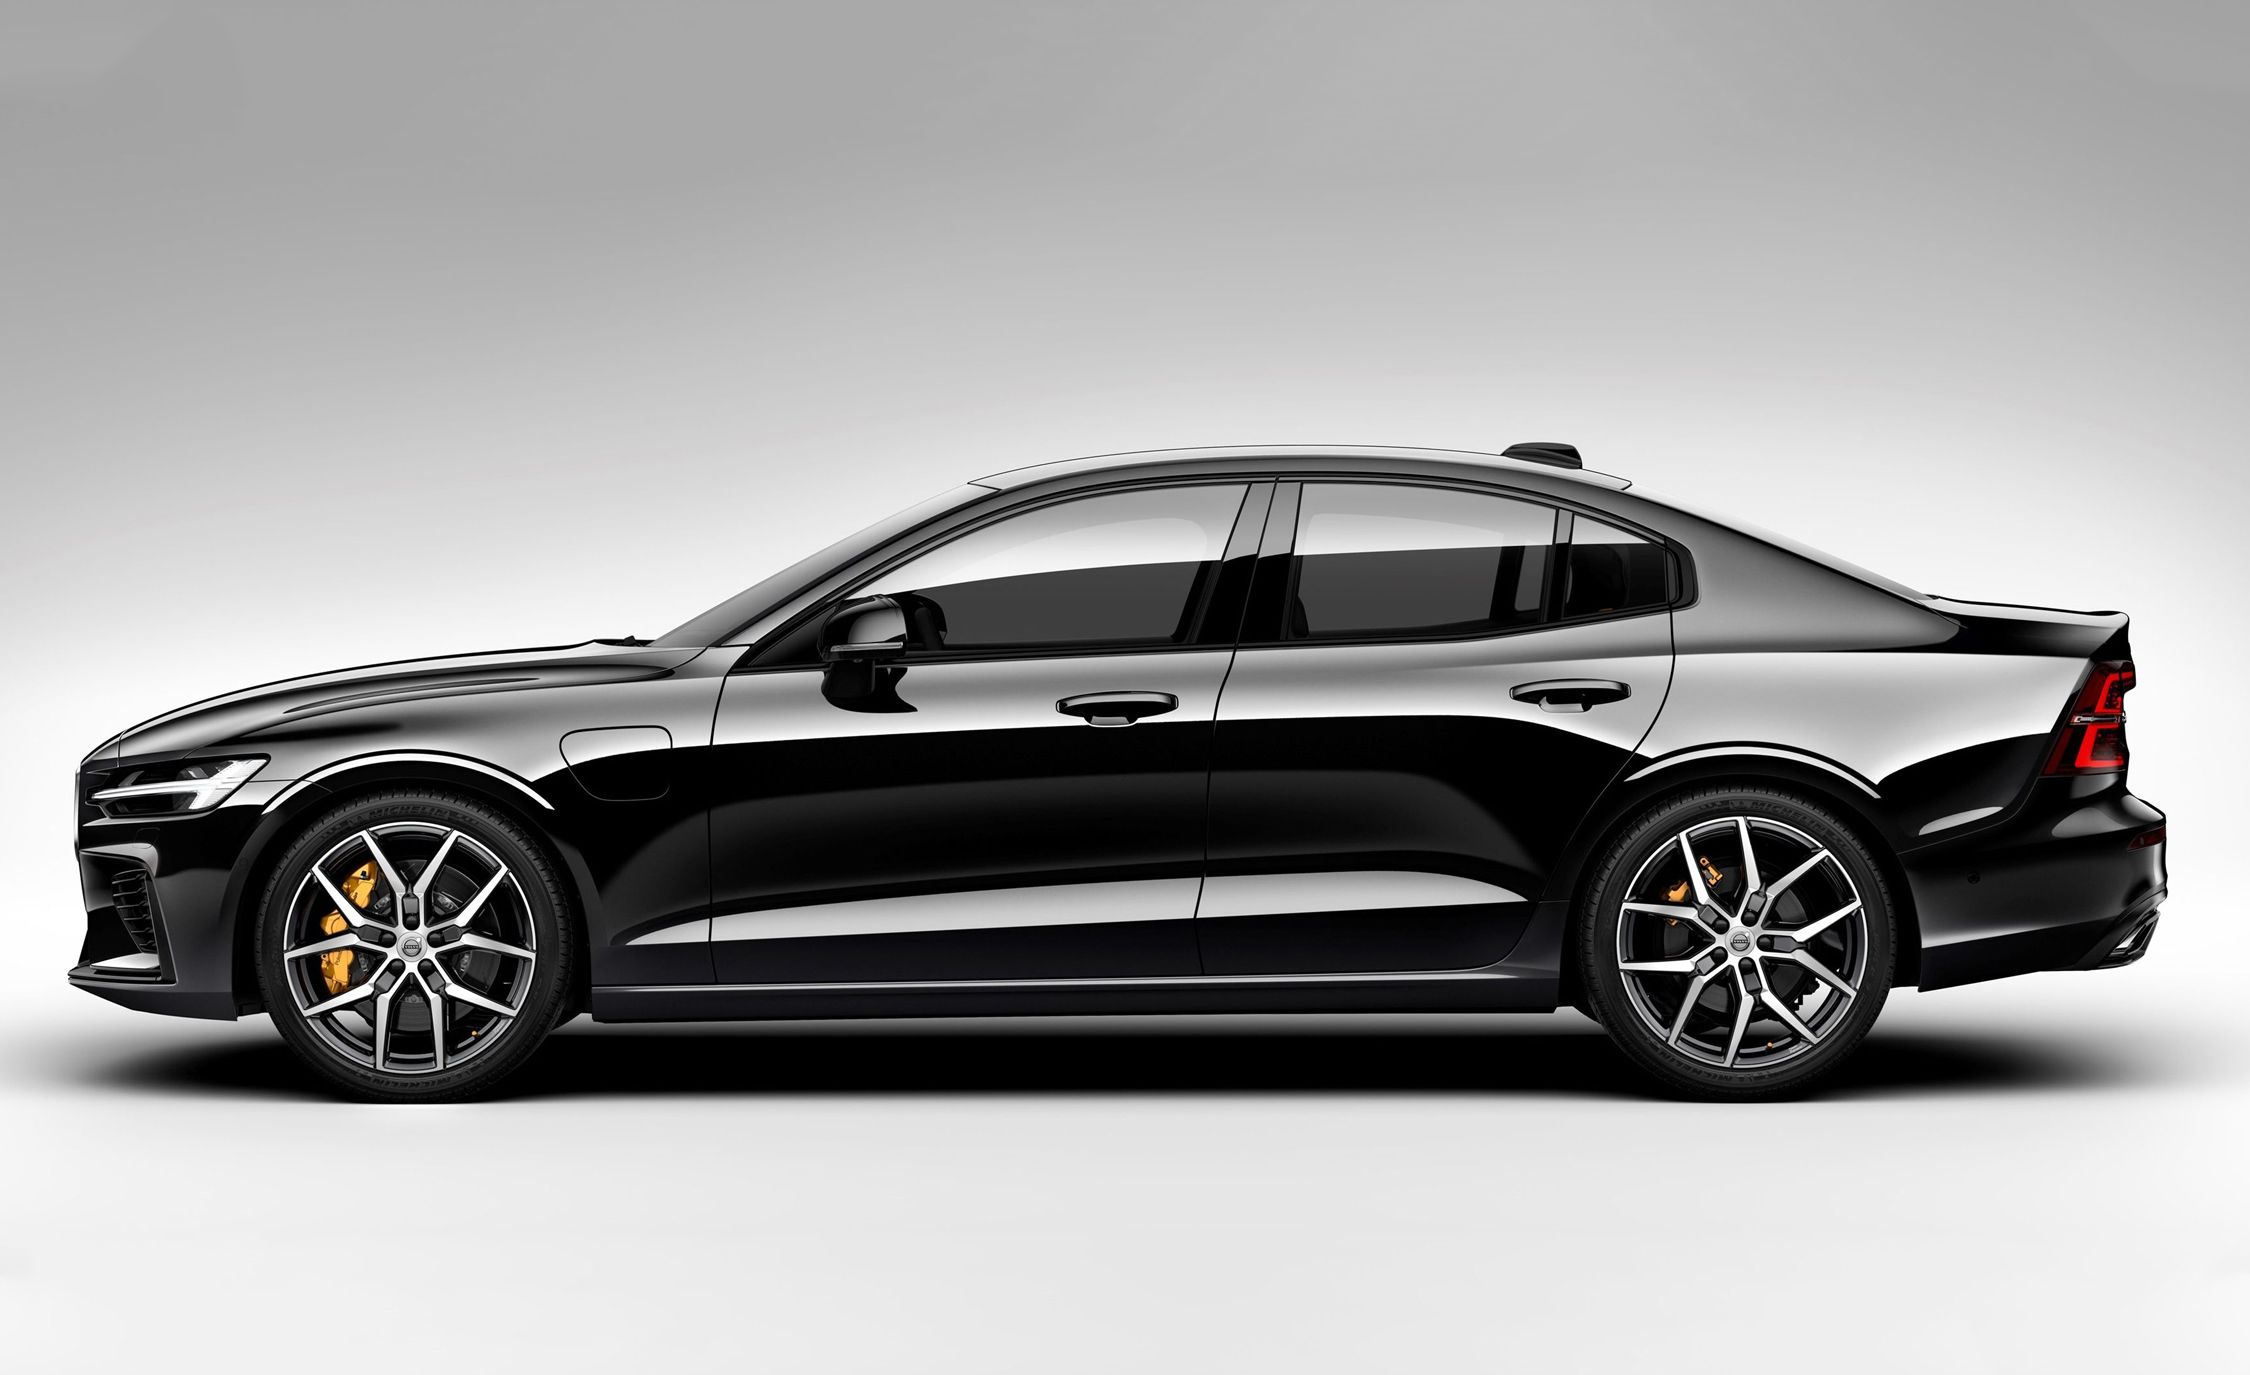 The Polestar Tuned 2019 Volvo S60 Is Going To Be Extremely Rare